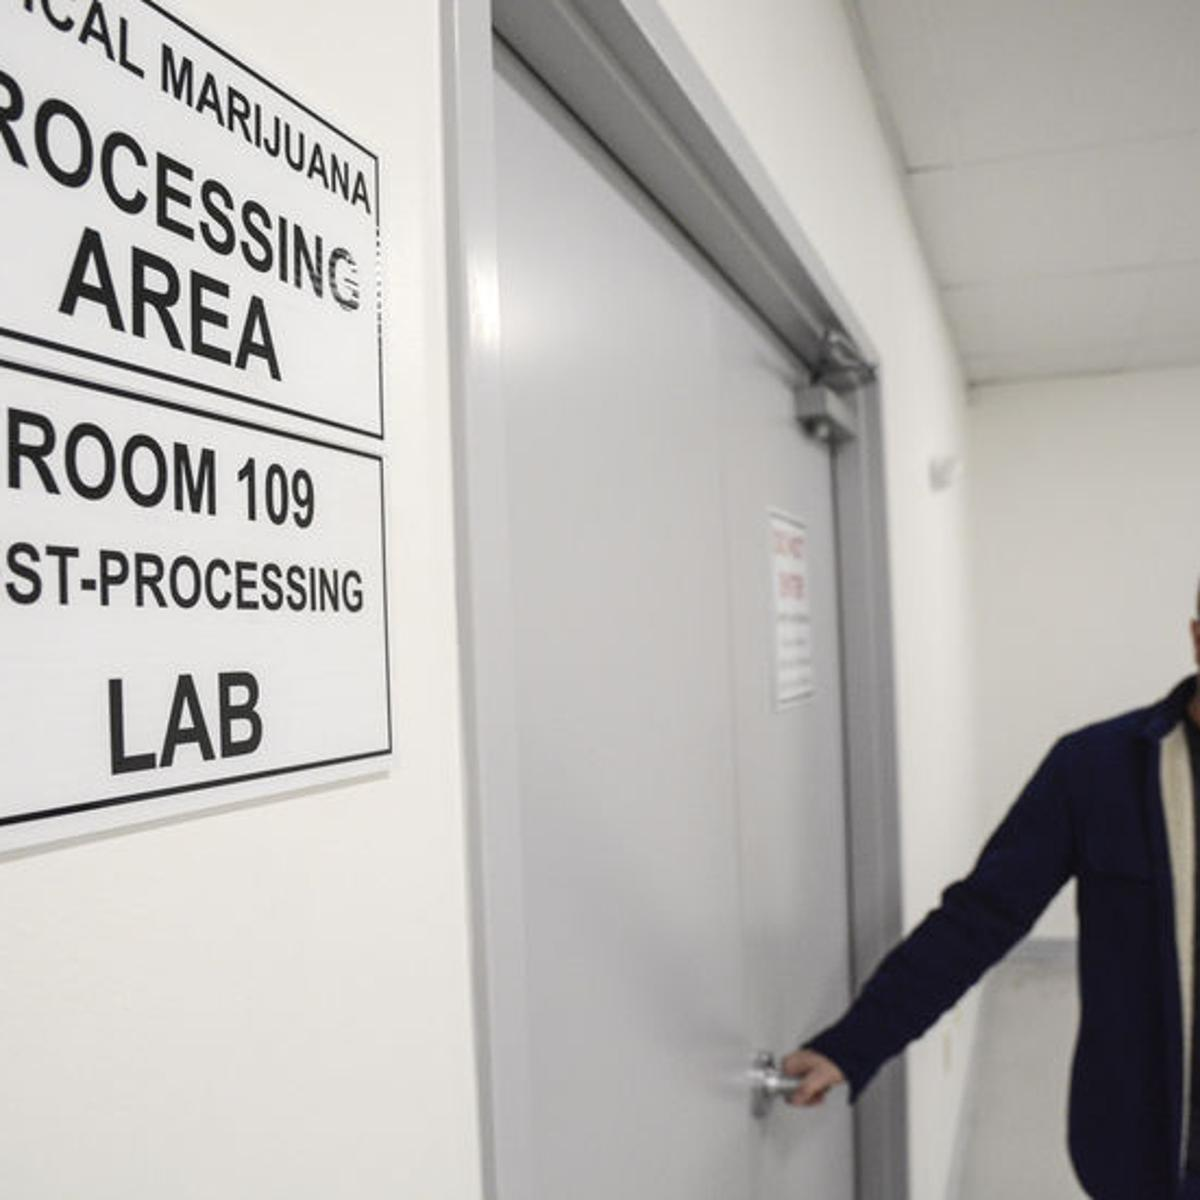 Clean rooms, scrubs, lab jackets — medical marijuana is a science